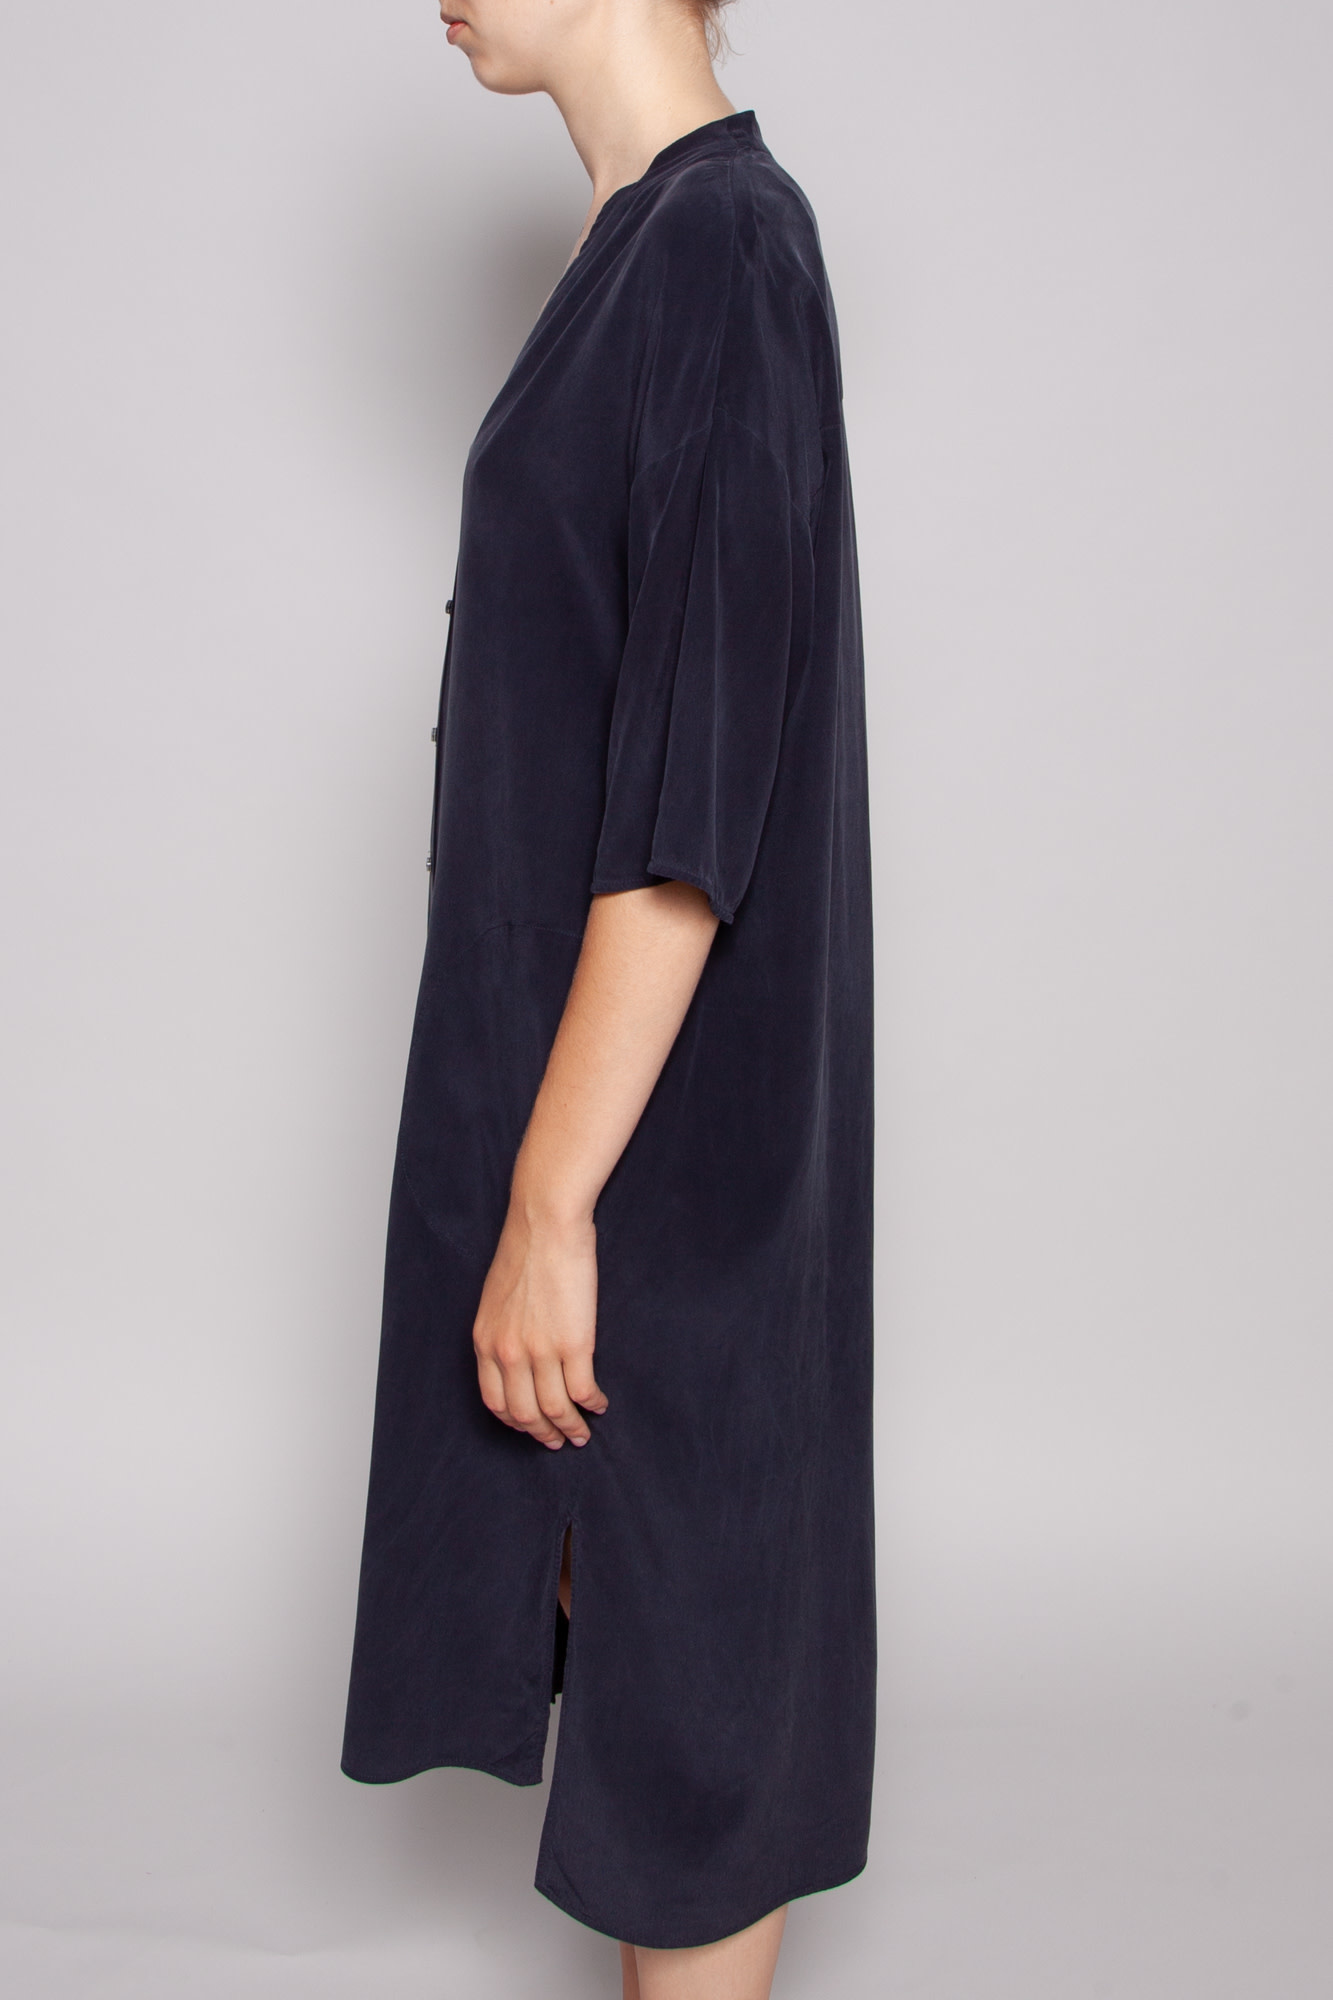 COS NAVY BLUE SILK DRESS